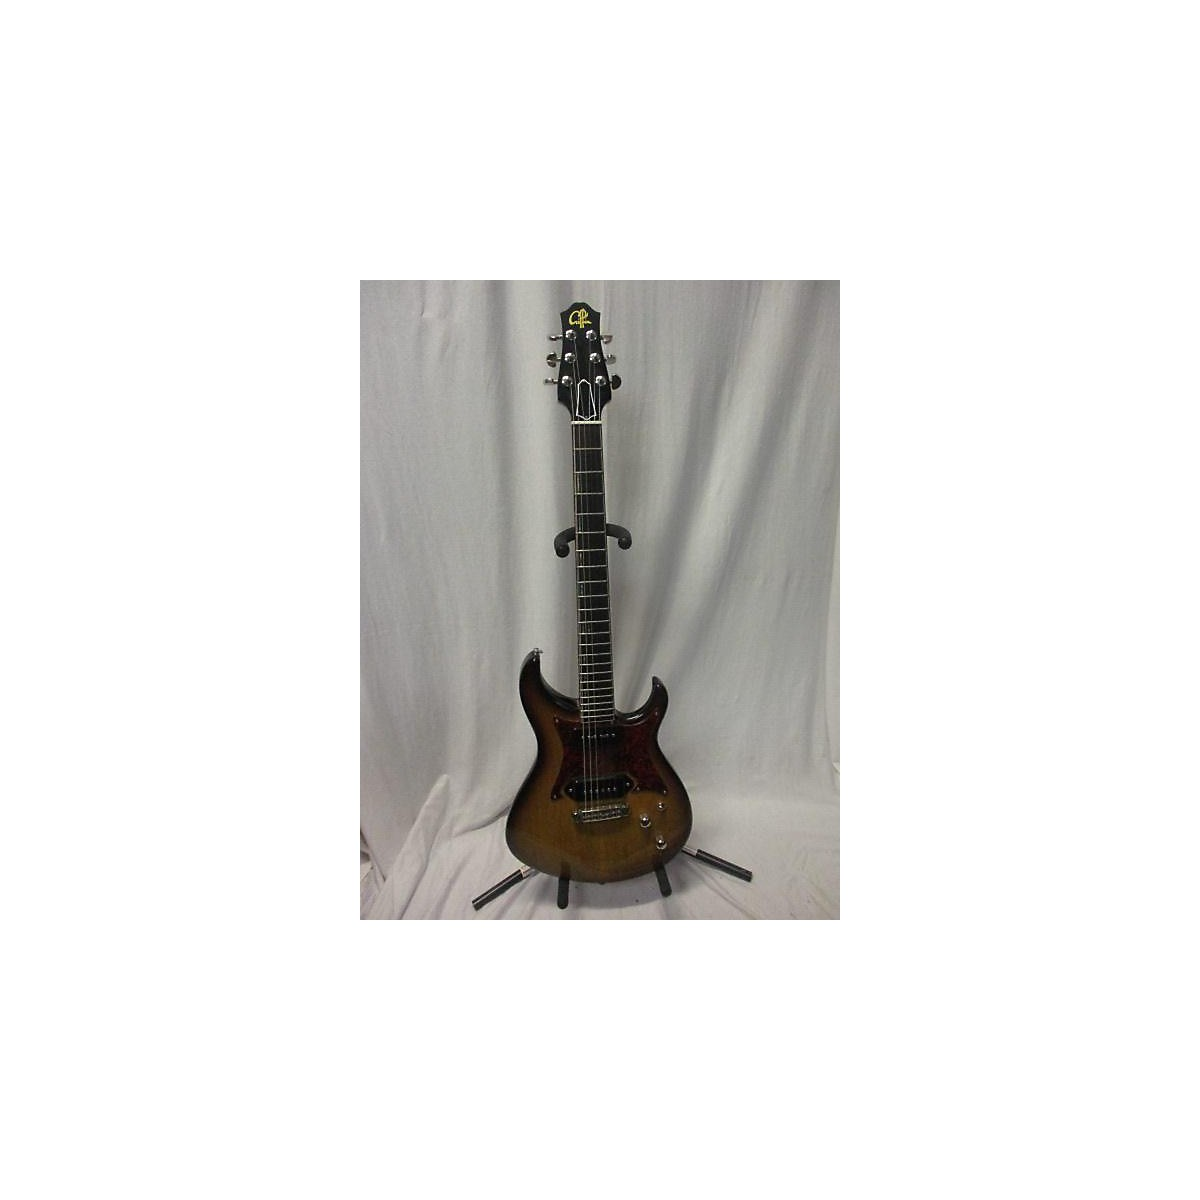 Giffin Guitars T2 Solid Body Electric Guitar